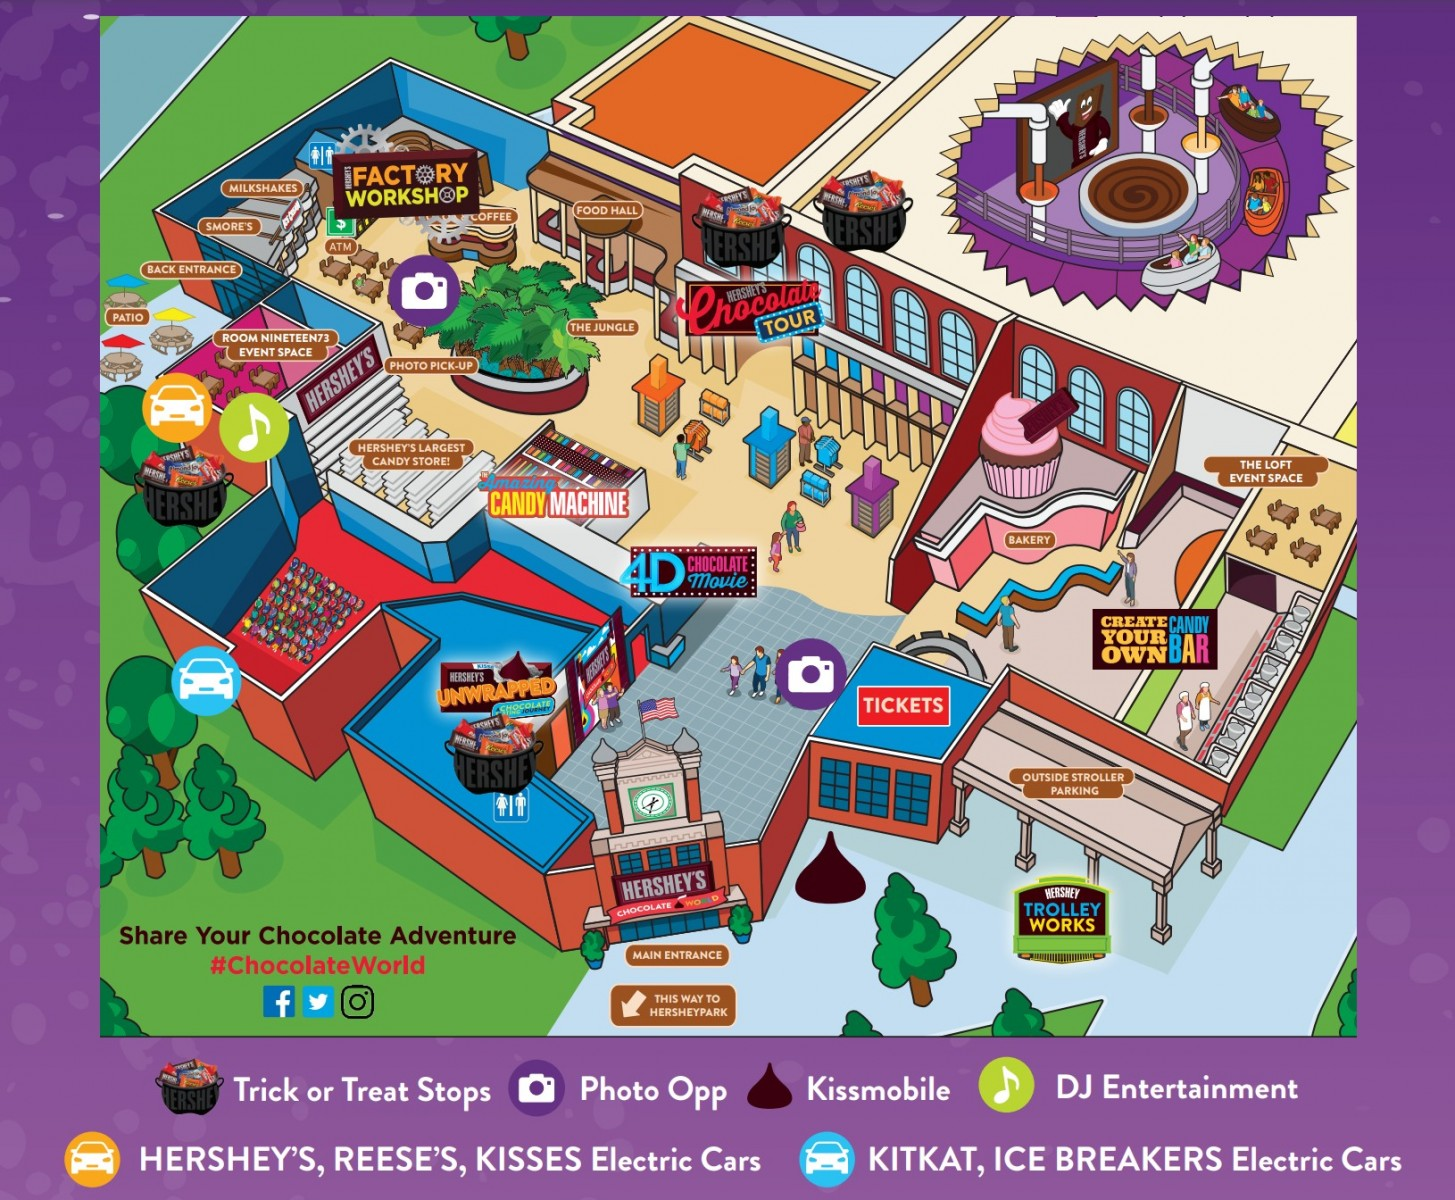 Hershey's Chocolate World Trick-or-Treat Trail Map